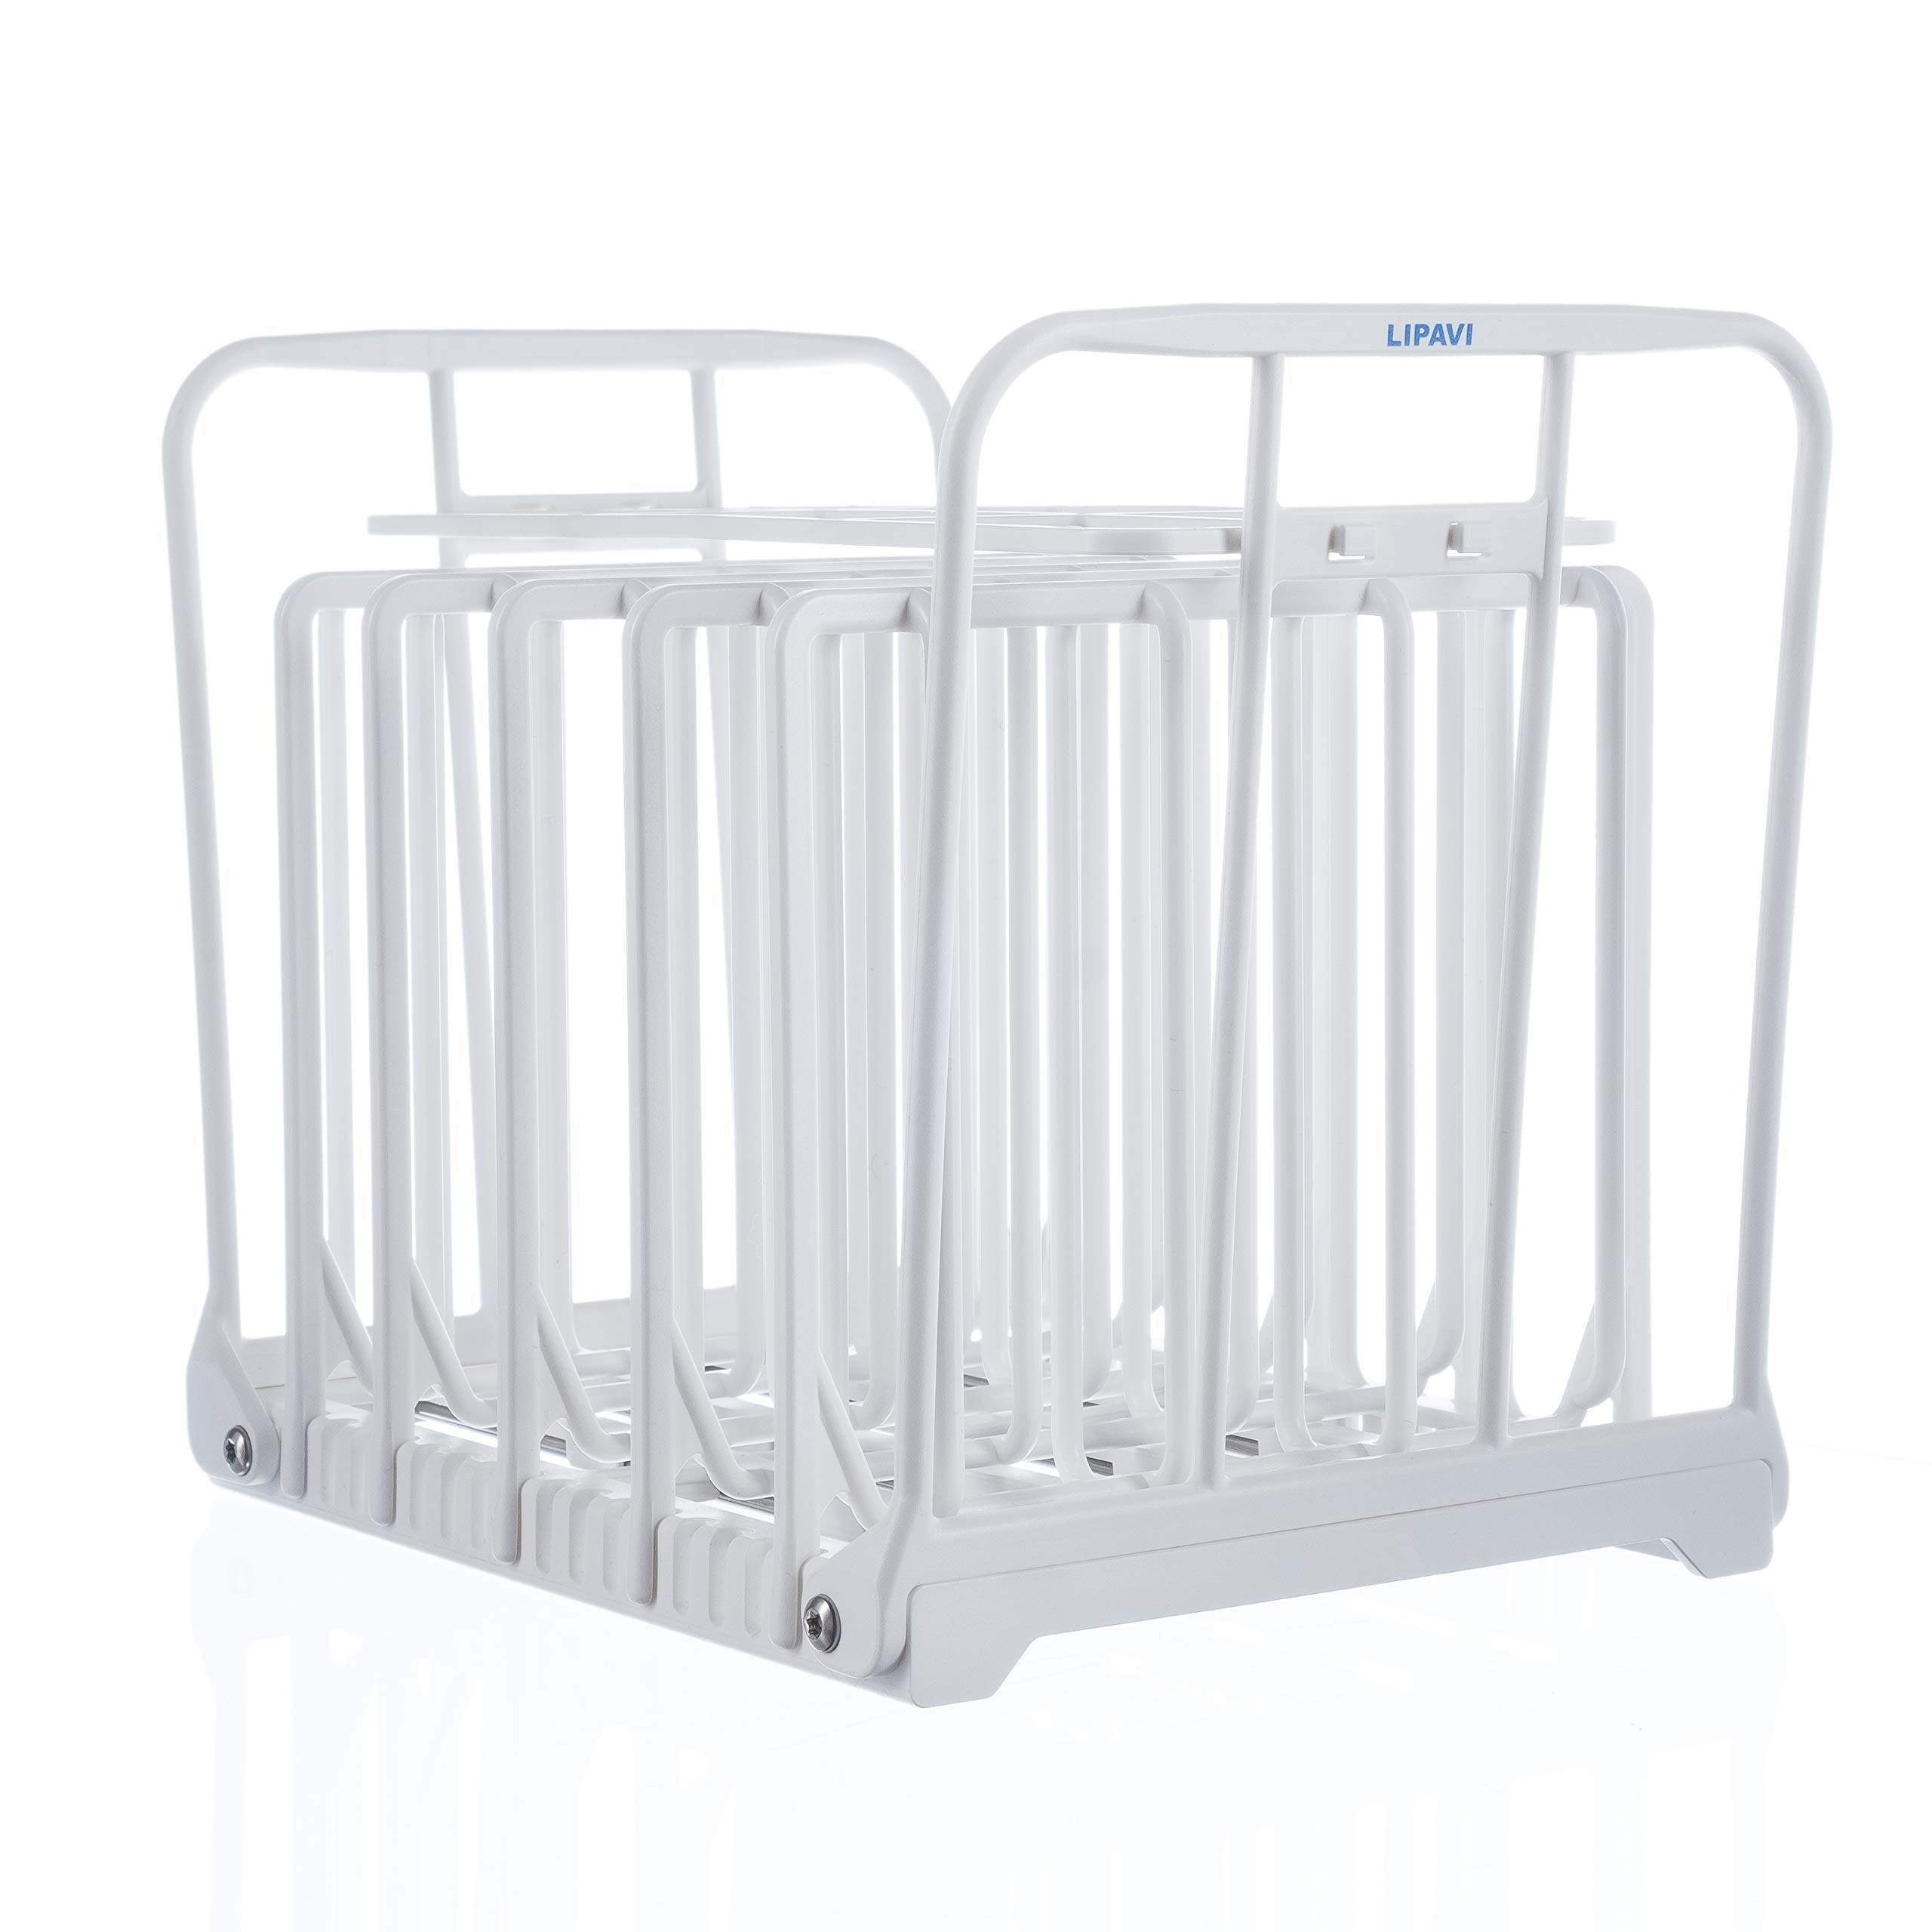 LIPAVI N10X Sous Vide Rack with Anti Float - Adjustable, Collapsible, Ensures even warming with Sous Vide Cooking - White Polycarbonate with 316L Stainless steel weights - Square L:7.8 W:6.4 H:6.6 inch - Fits LIPAVI C10 Container by LIPAVI